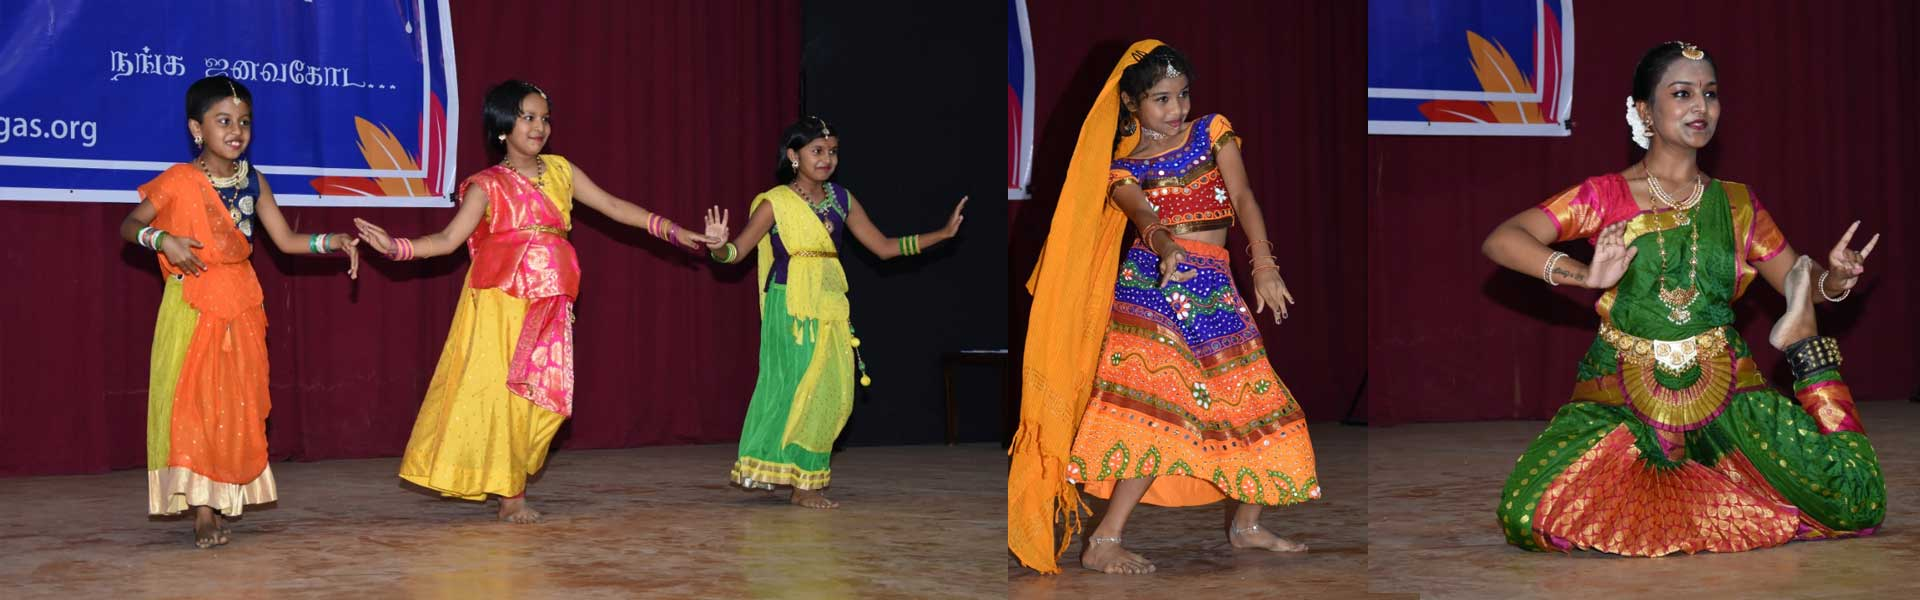 Cultural Program at KBGA Anniversary